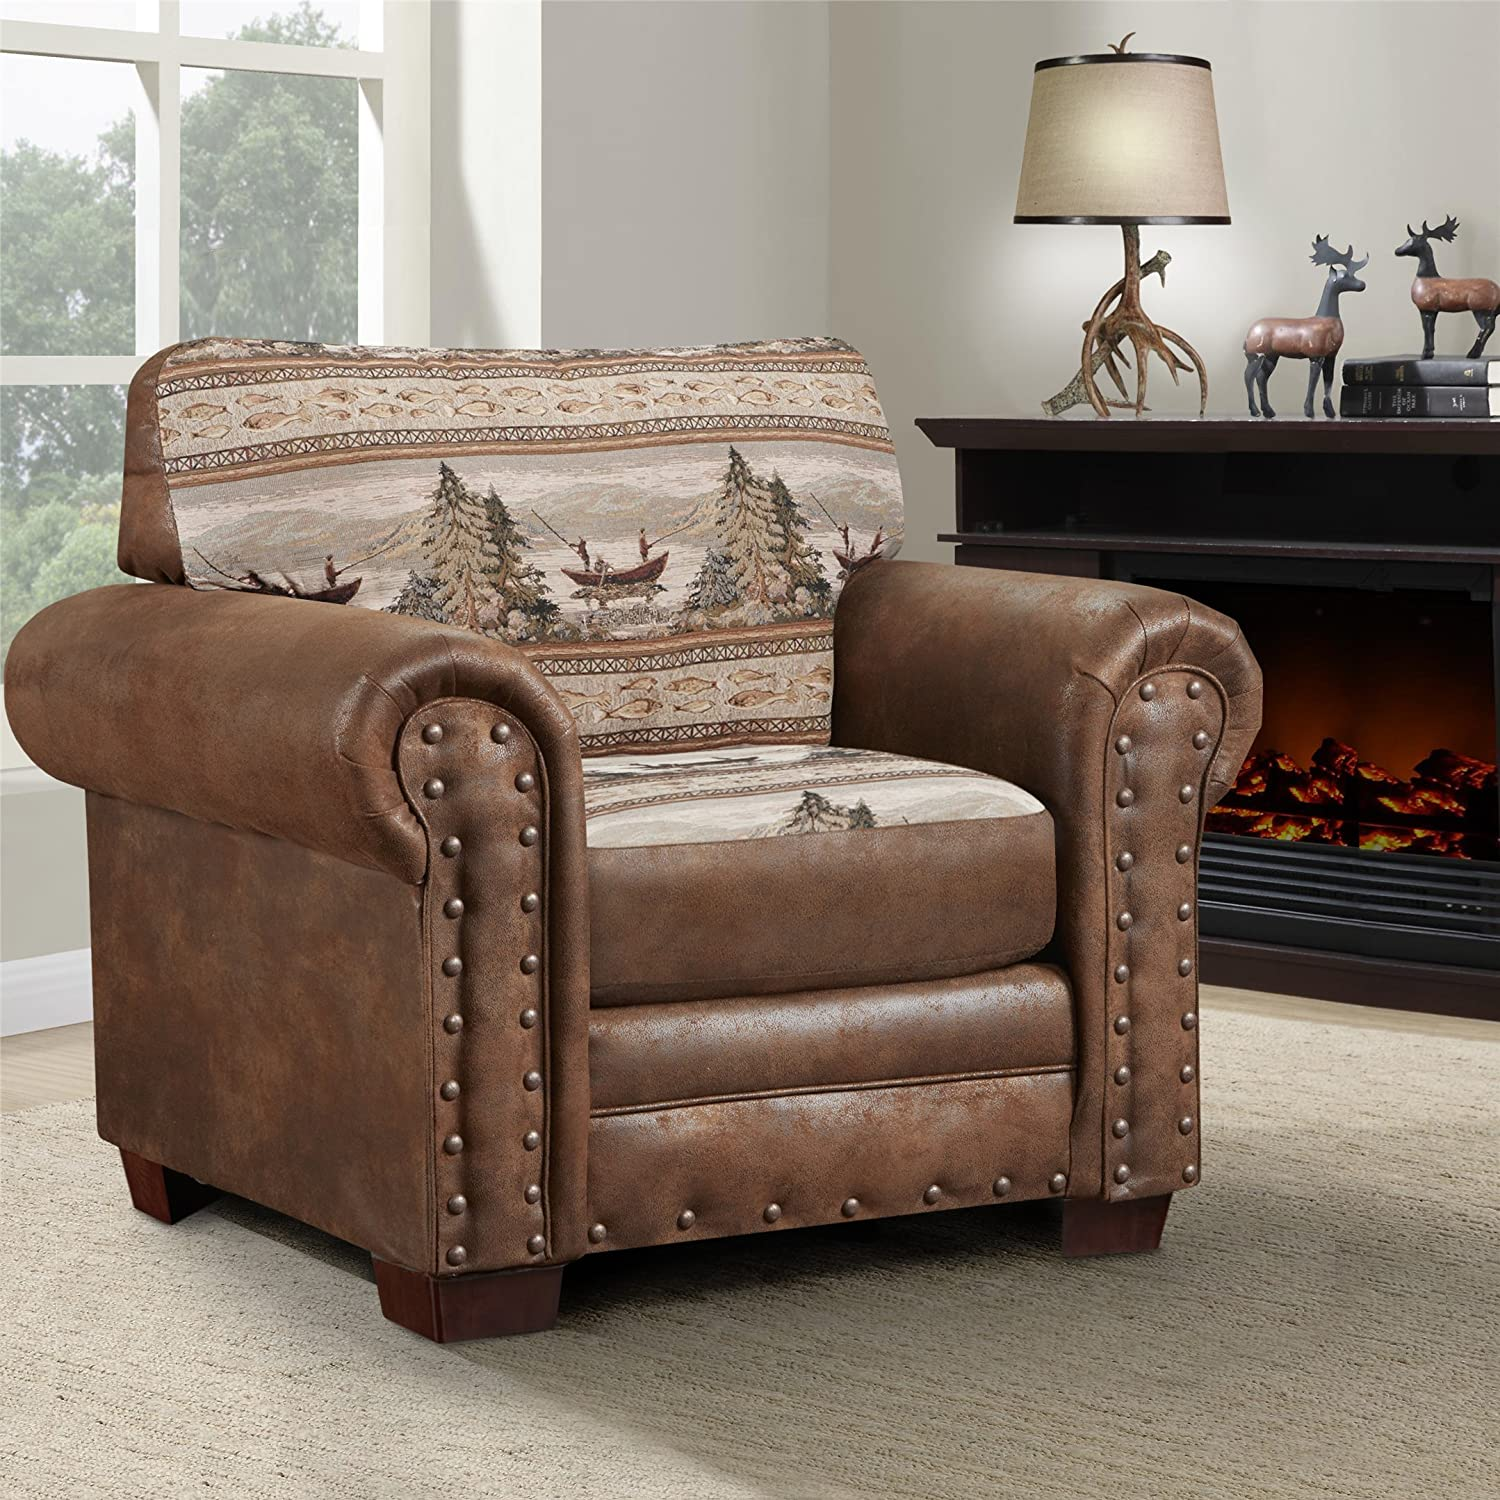 American Furniture Classics Alpine Lodge Chair